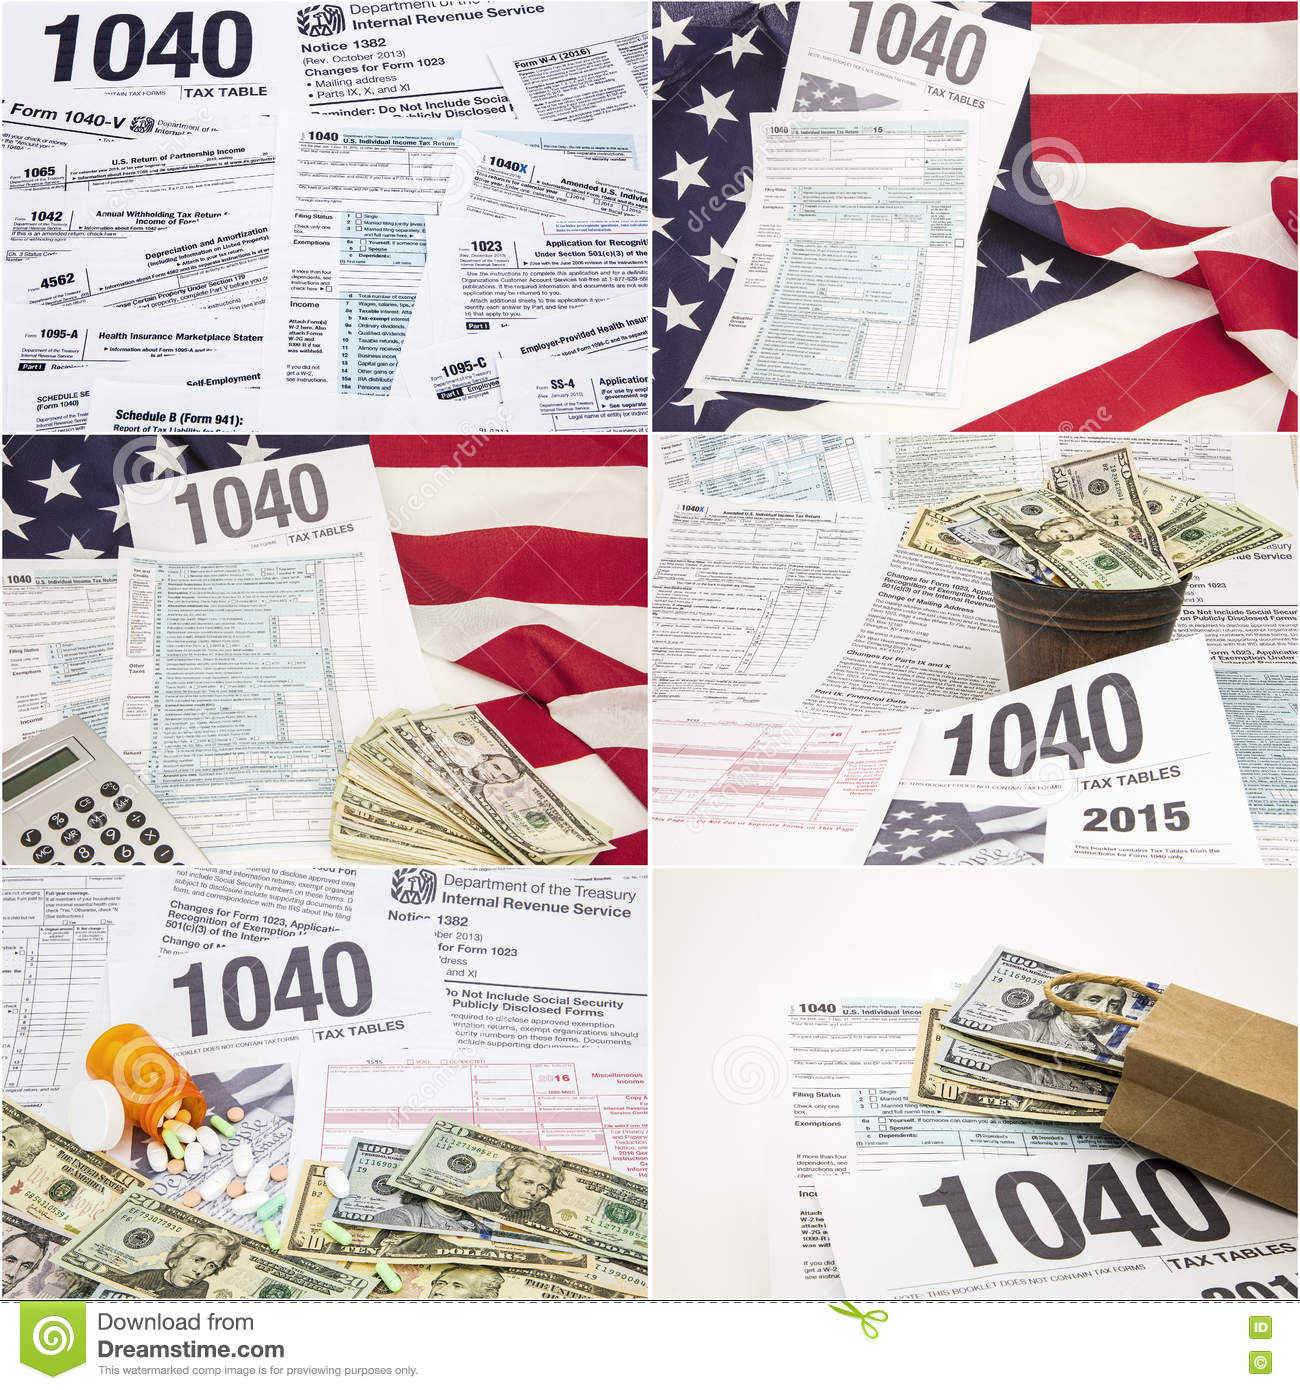 Form 1040 Irs Income Tax American Flag Drugs Money Collage Stock